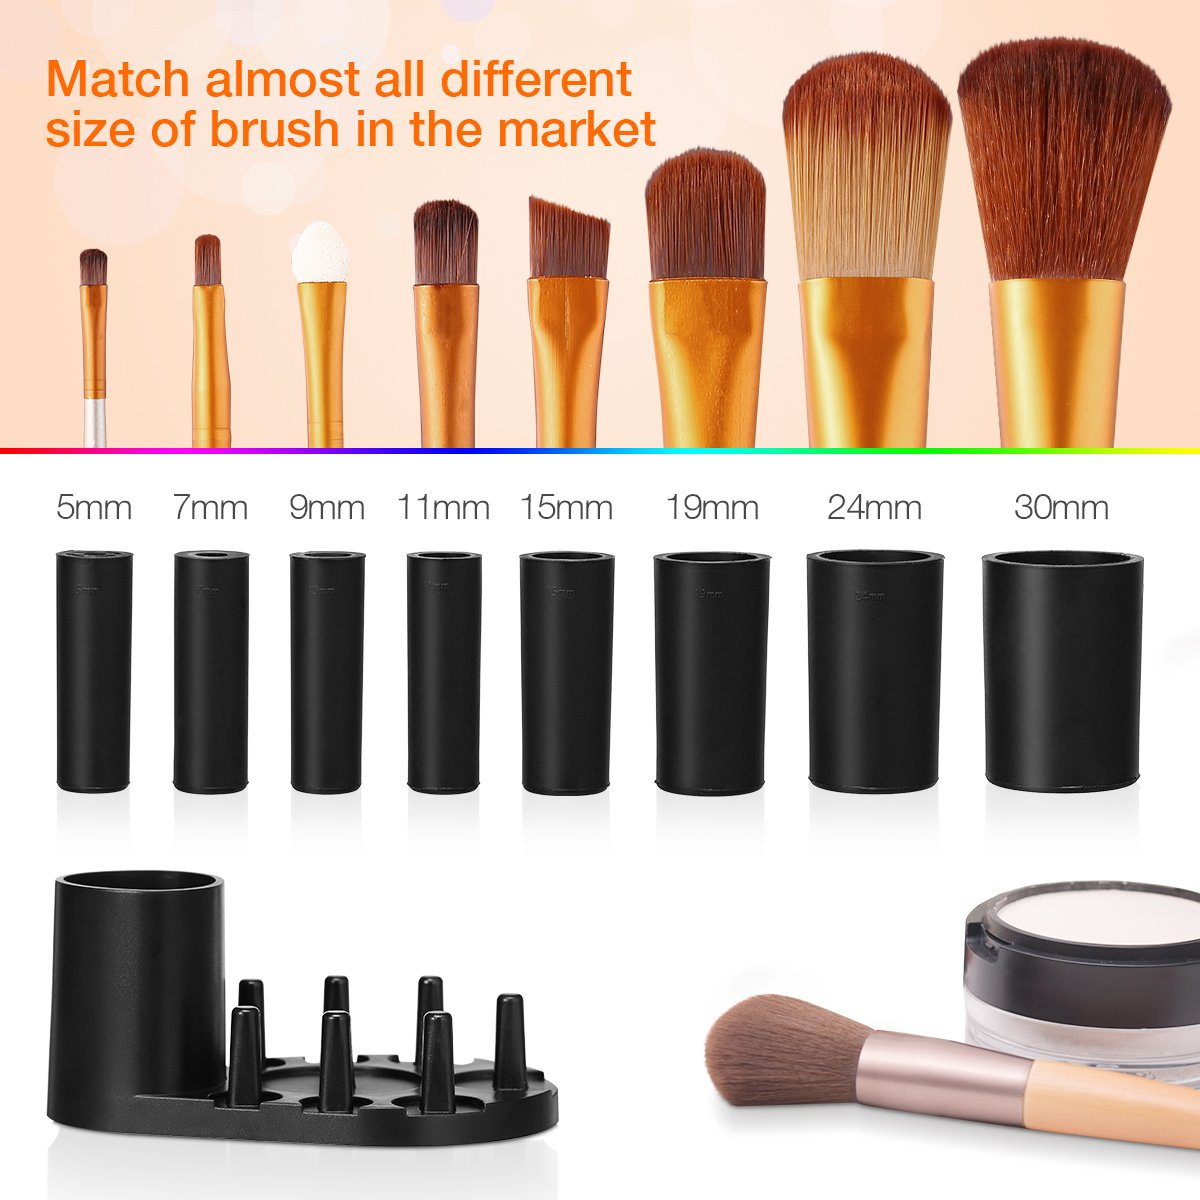 Makeup Brush Cleaner, Electric Makeup Brush Cleaner and Dryer for All Size Makeup Brushes with 8 Different Rubber Collars, Clean and Dry in Seconds (Black)